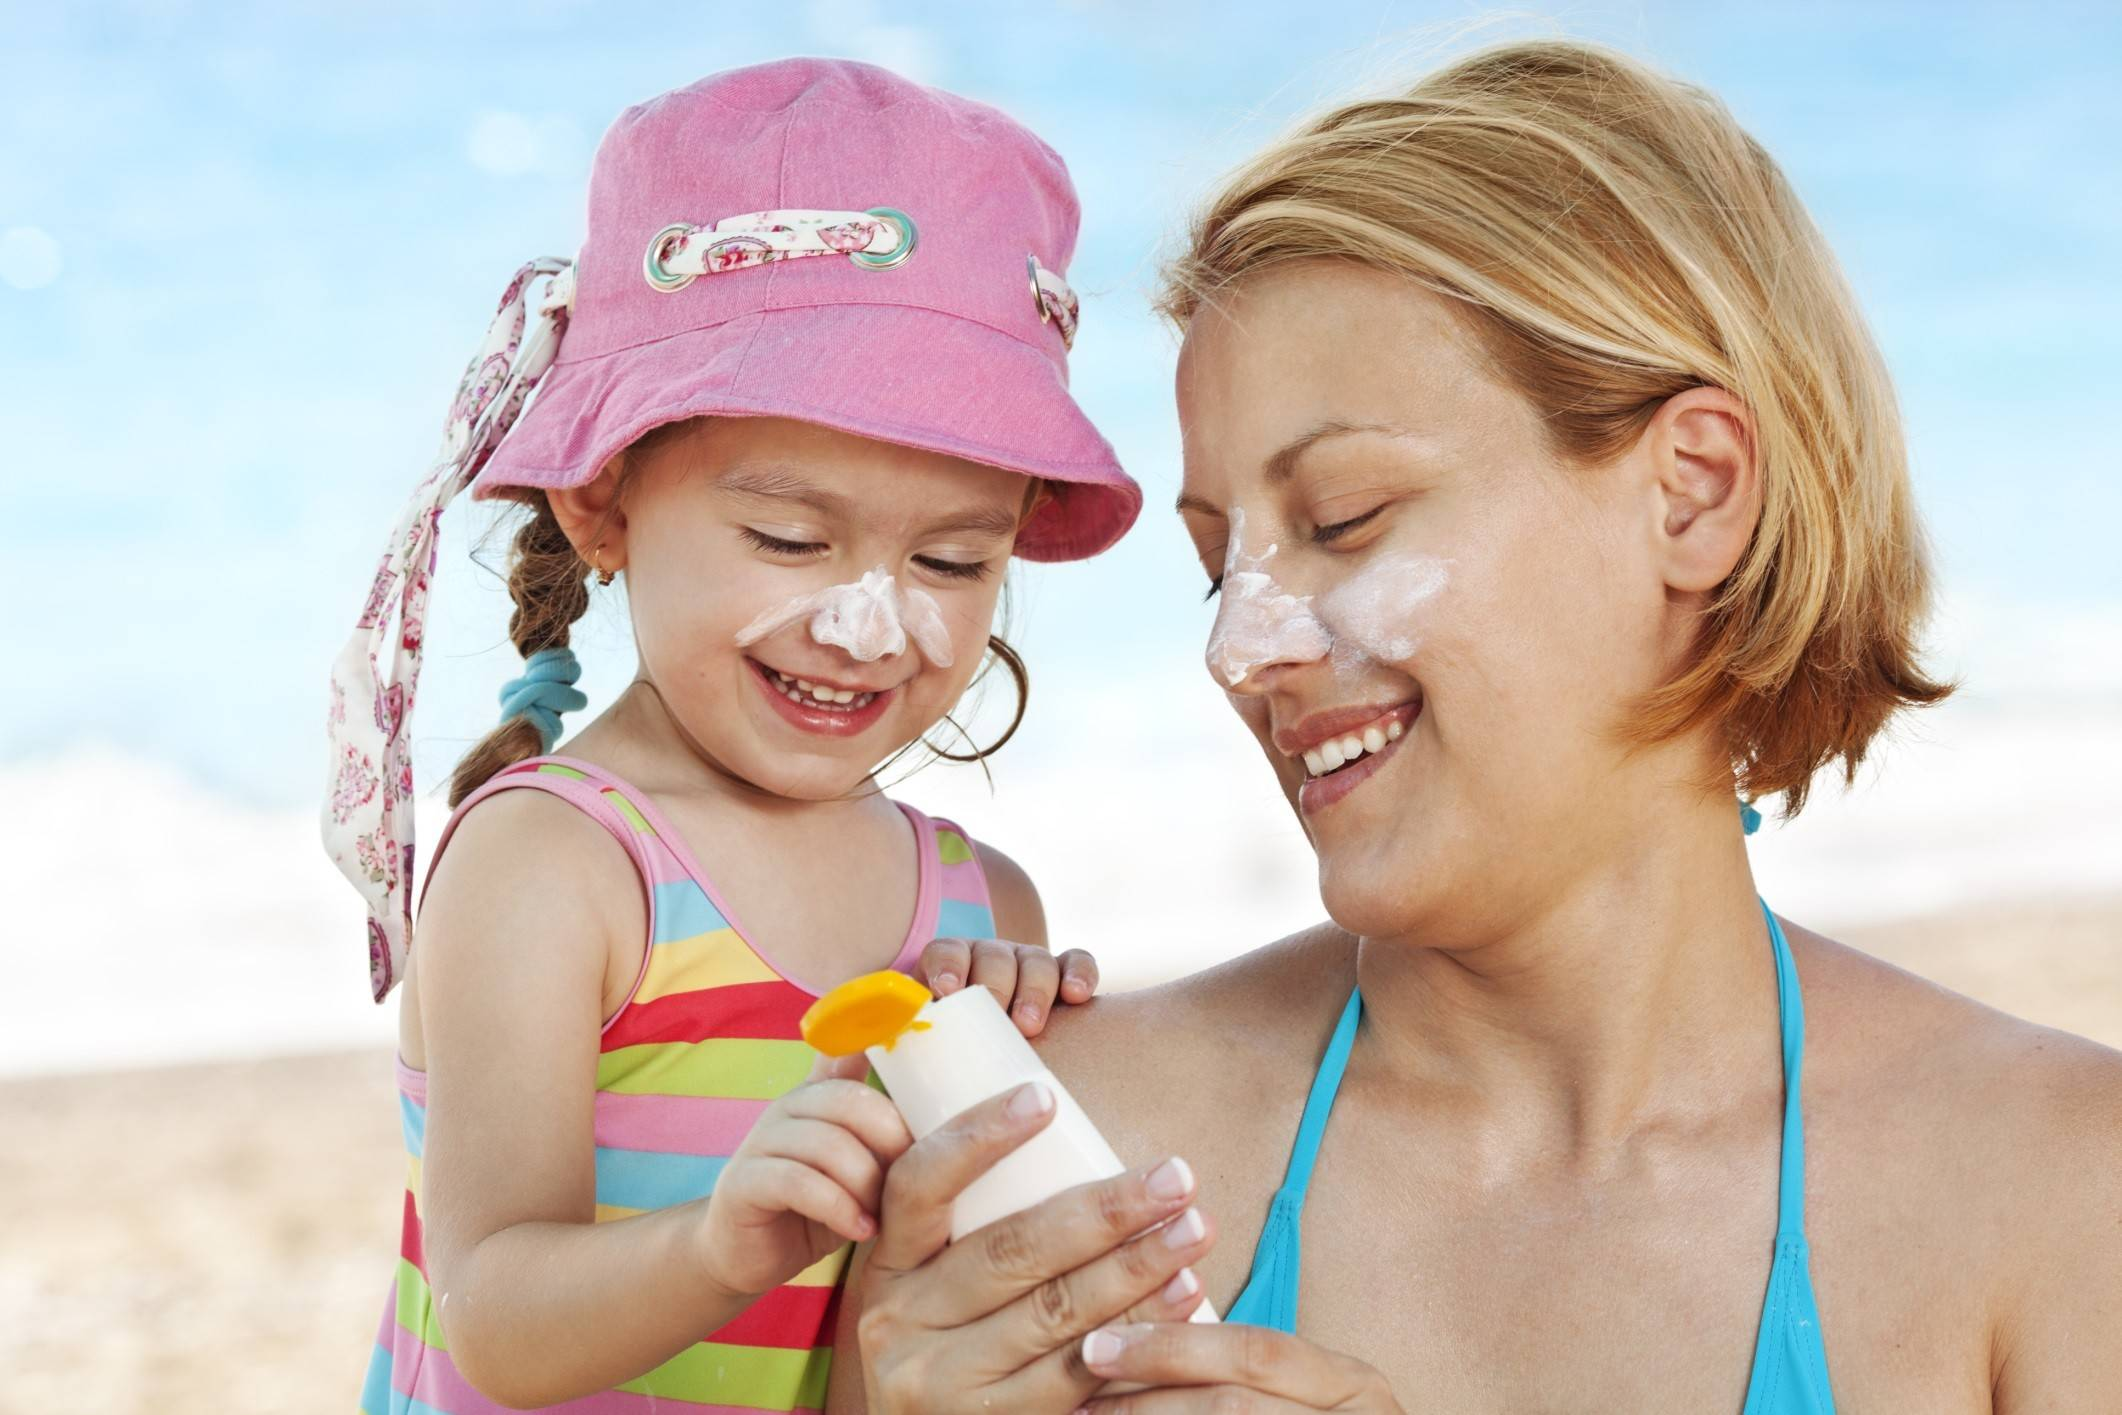 Be sure to slather on the  sunscreen this summer to avoid damaging your skin.